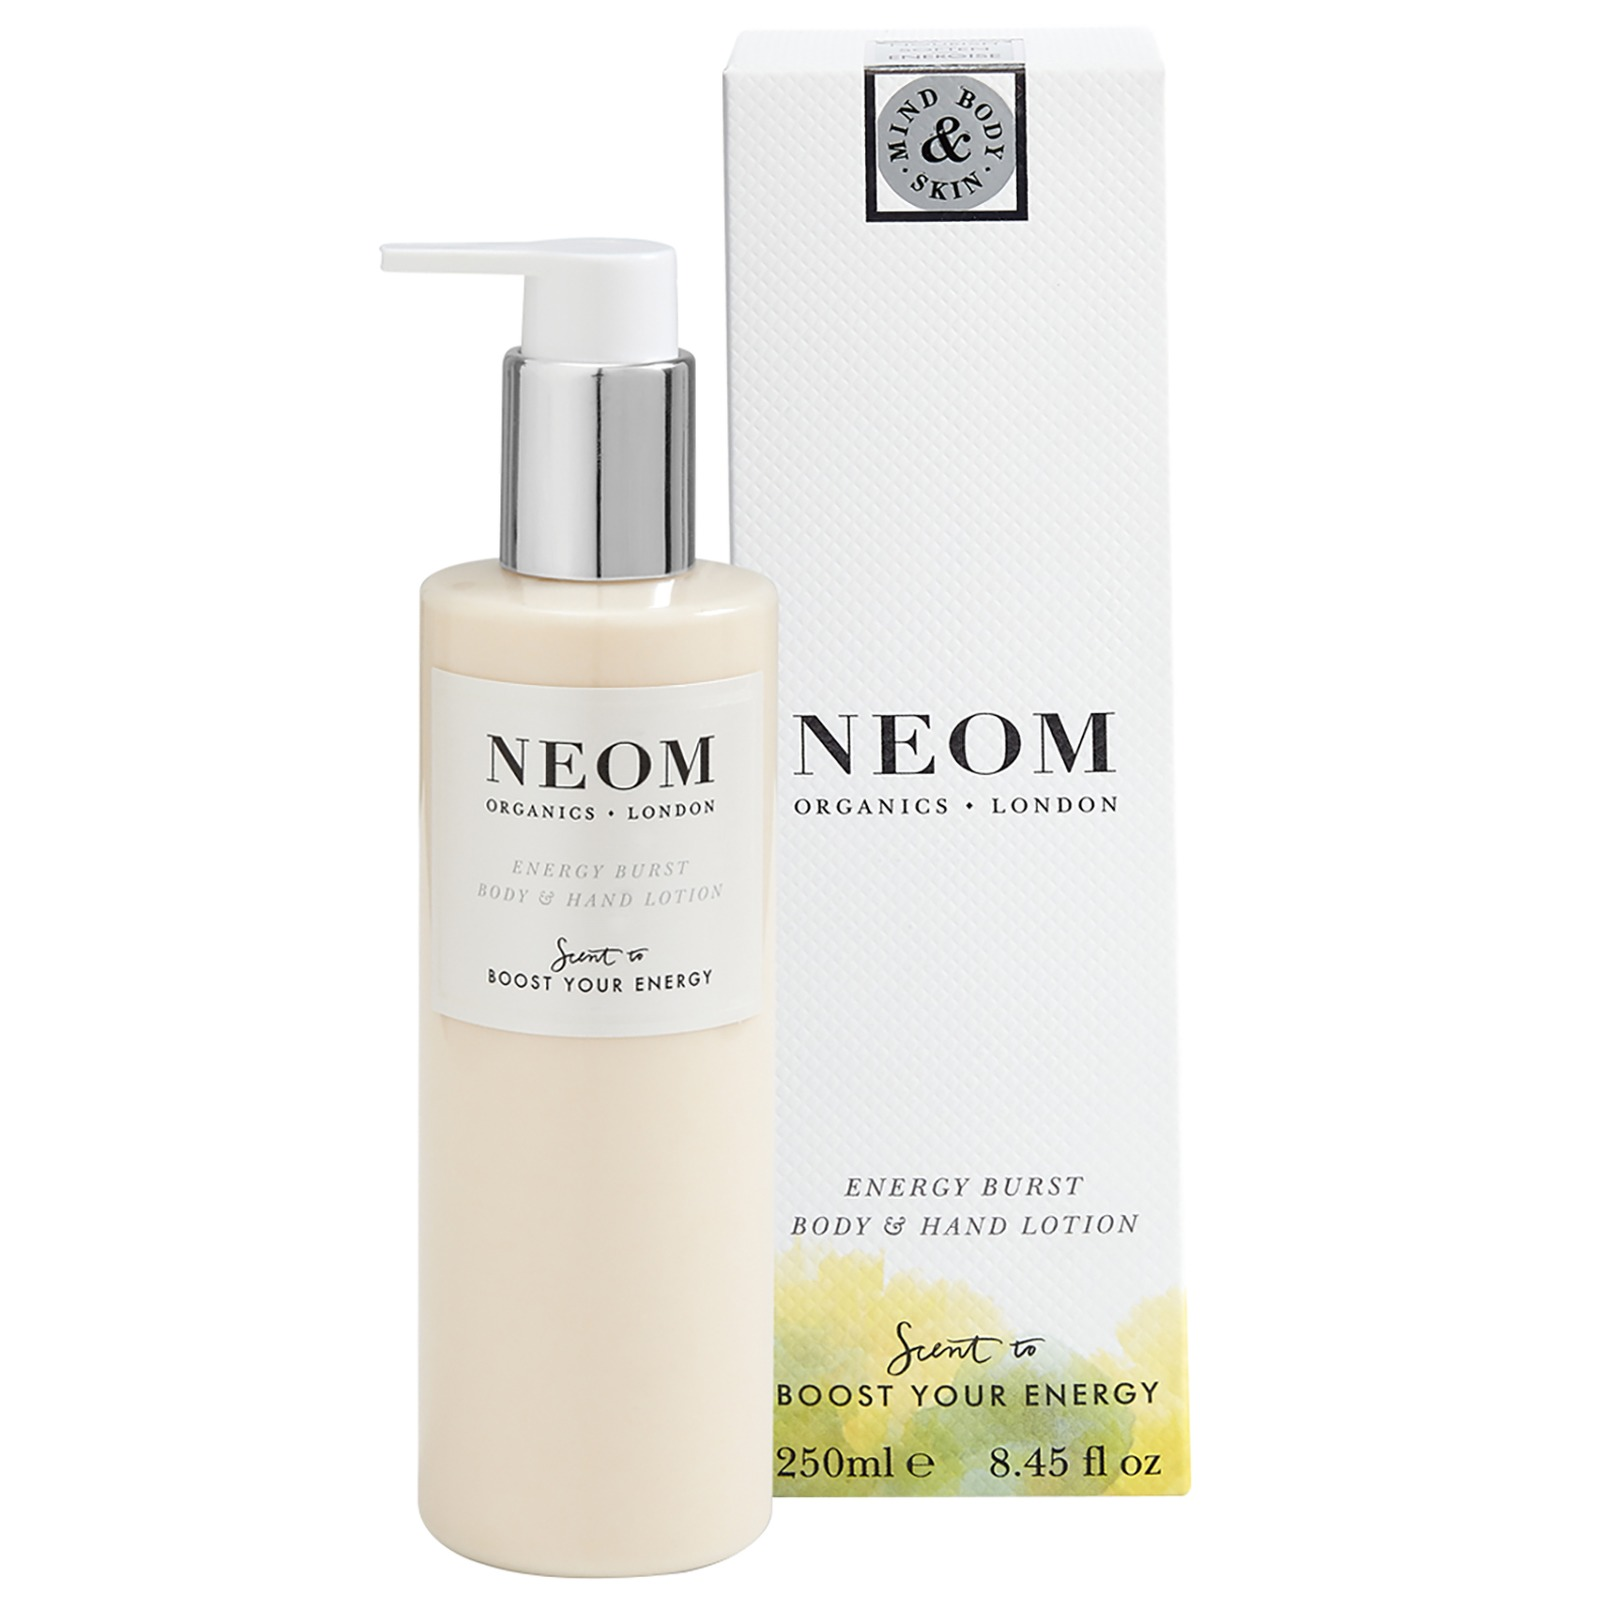 Neom Organics London Scent To Boost Your Energy Energy Burst Body & Hand Lotion 250ml